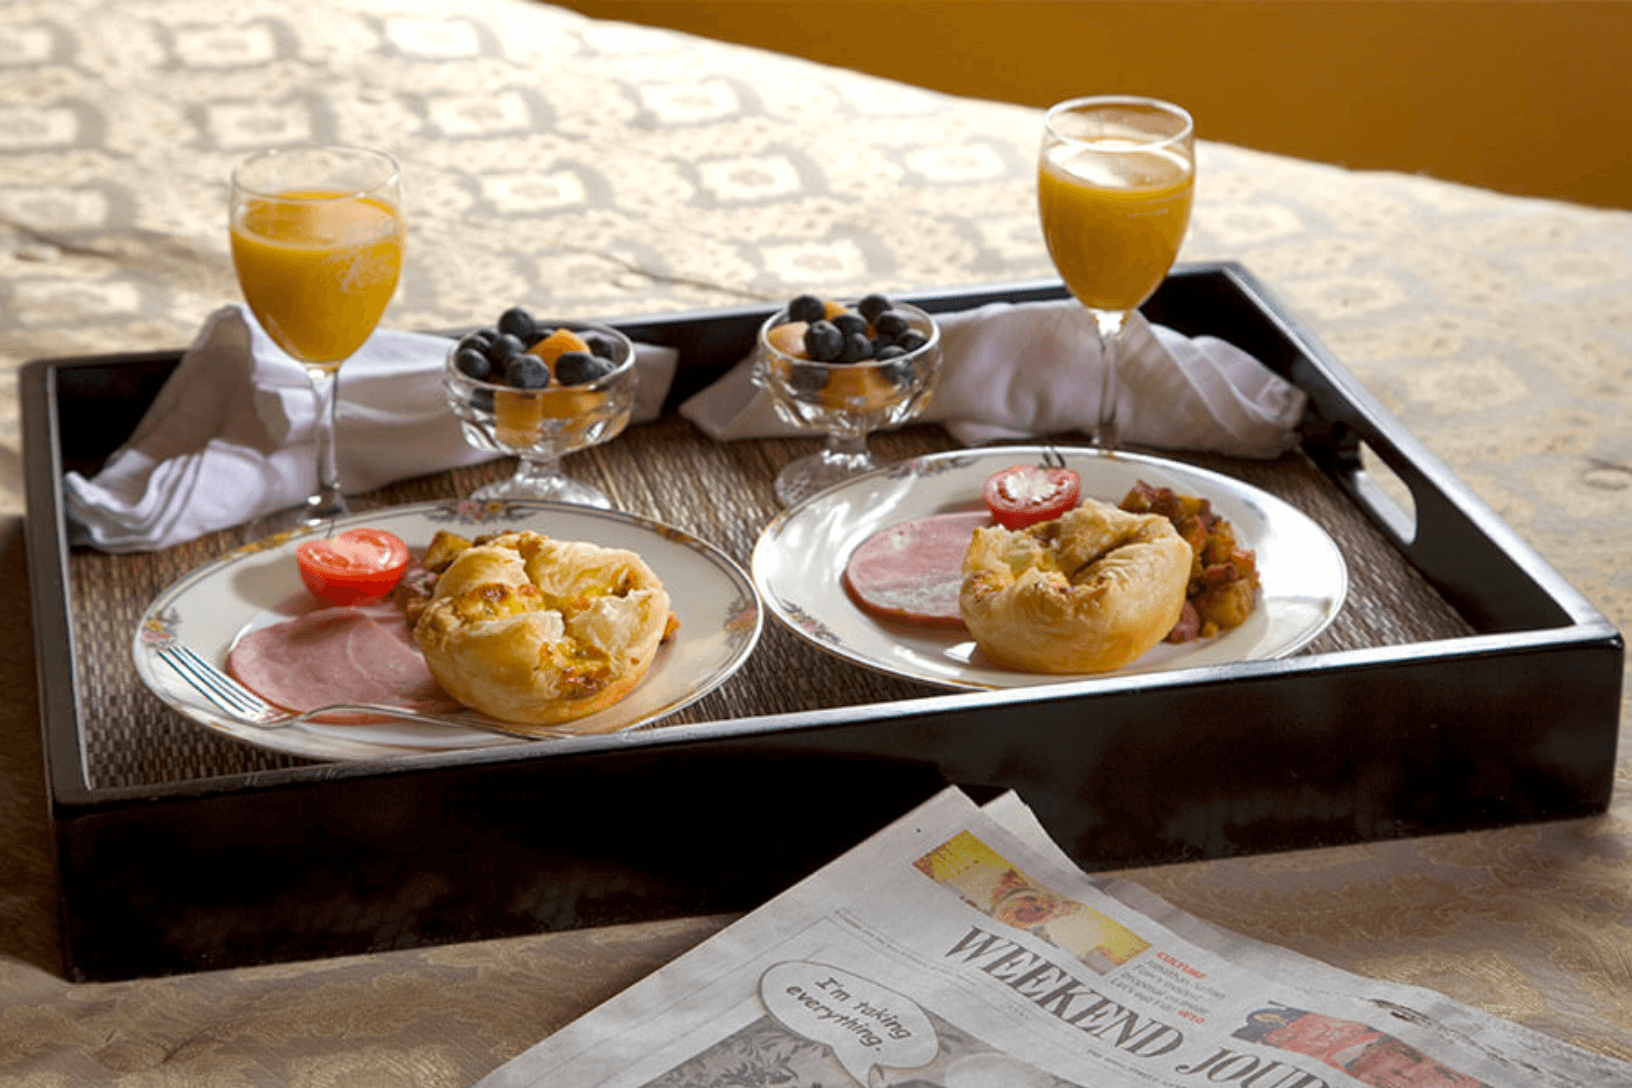 Breakfast tray sitting on the bed topped with sweet and savory breakfast foods and fresh orange juice.